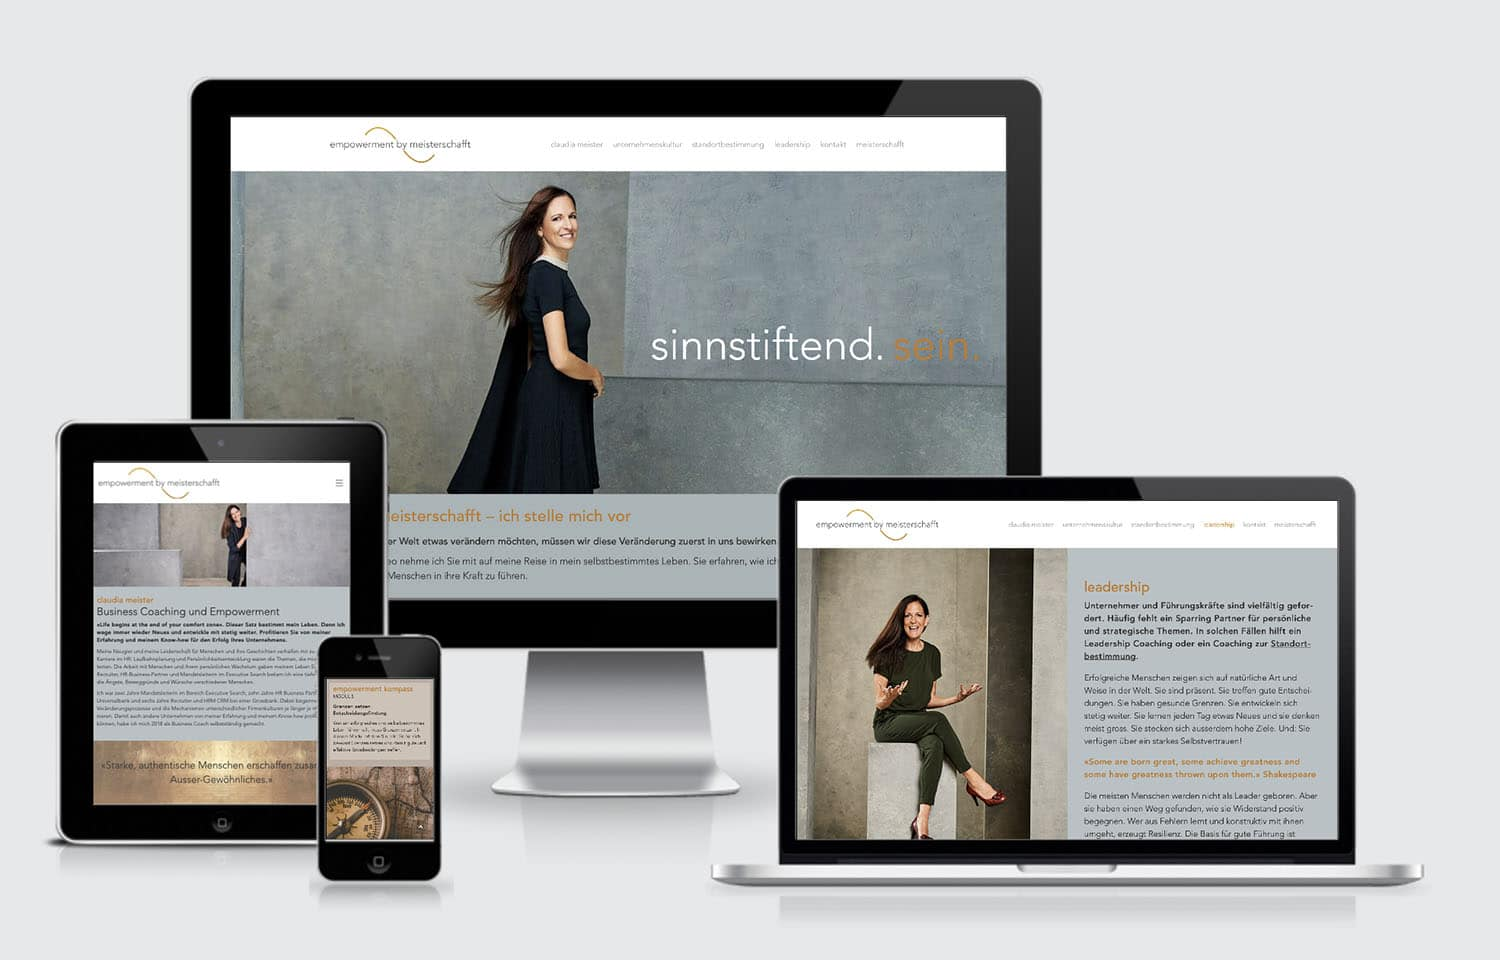 Webdesign responsive Empowerment by Claudia Meister